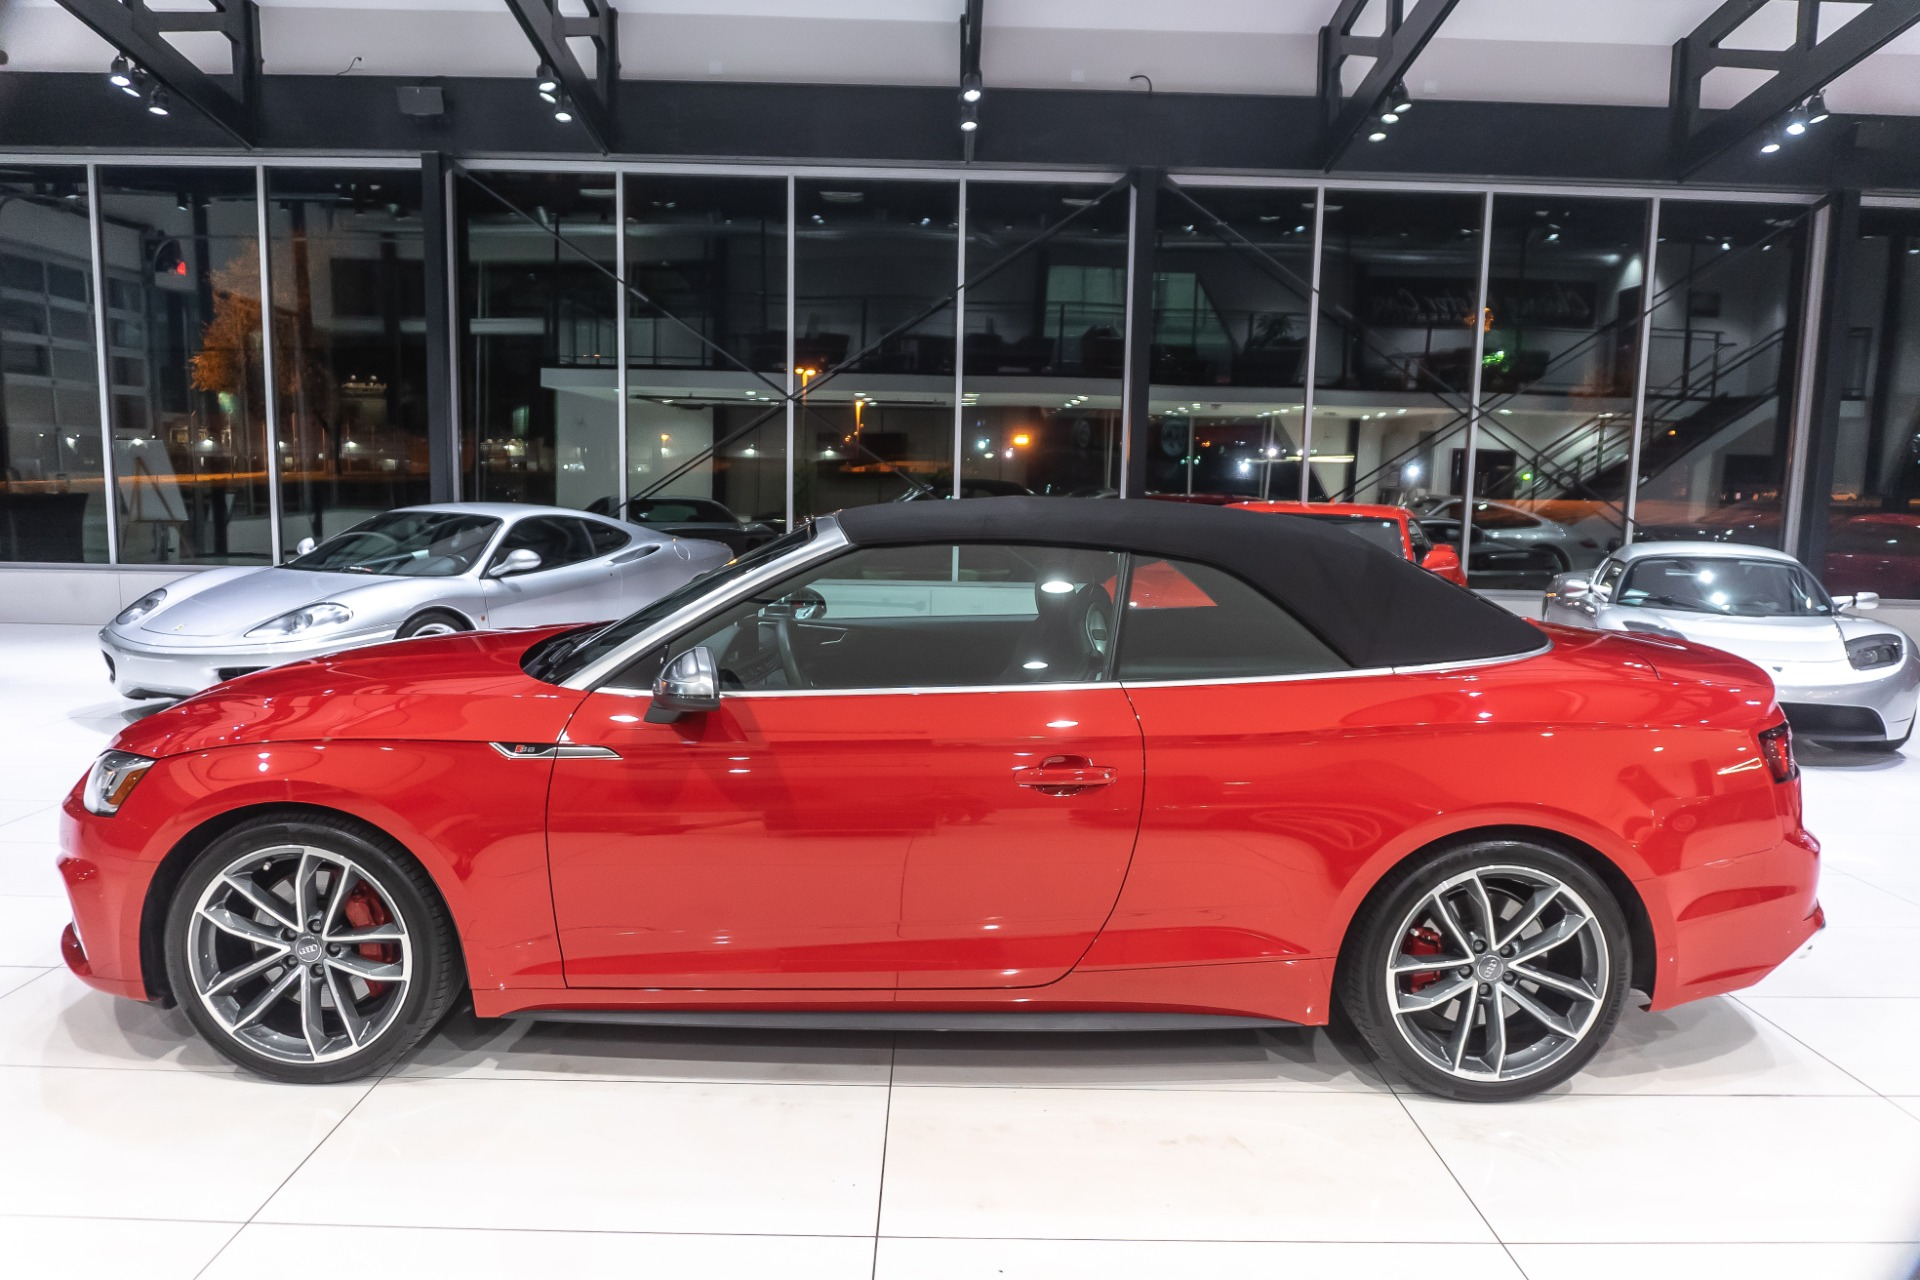 Used-2018-Audi-S5-30T-quattro-Prestige-Cabriolet-Convertible-MSRP-72K-ONLY-6k-MILES